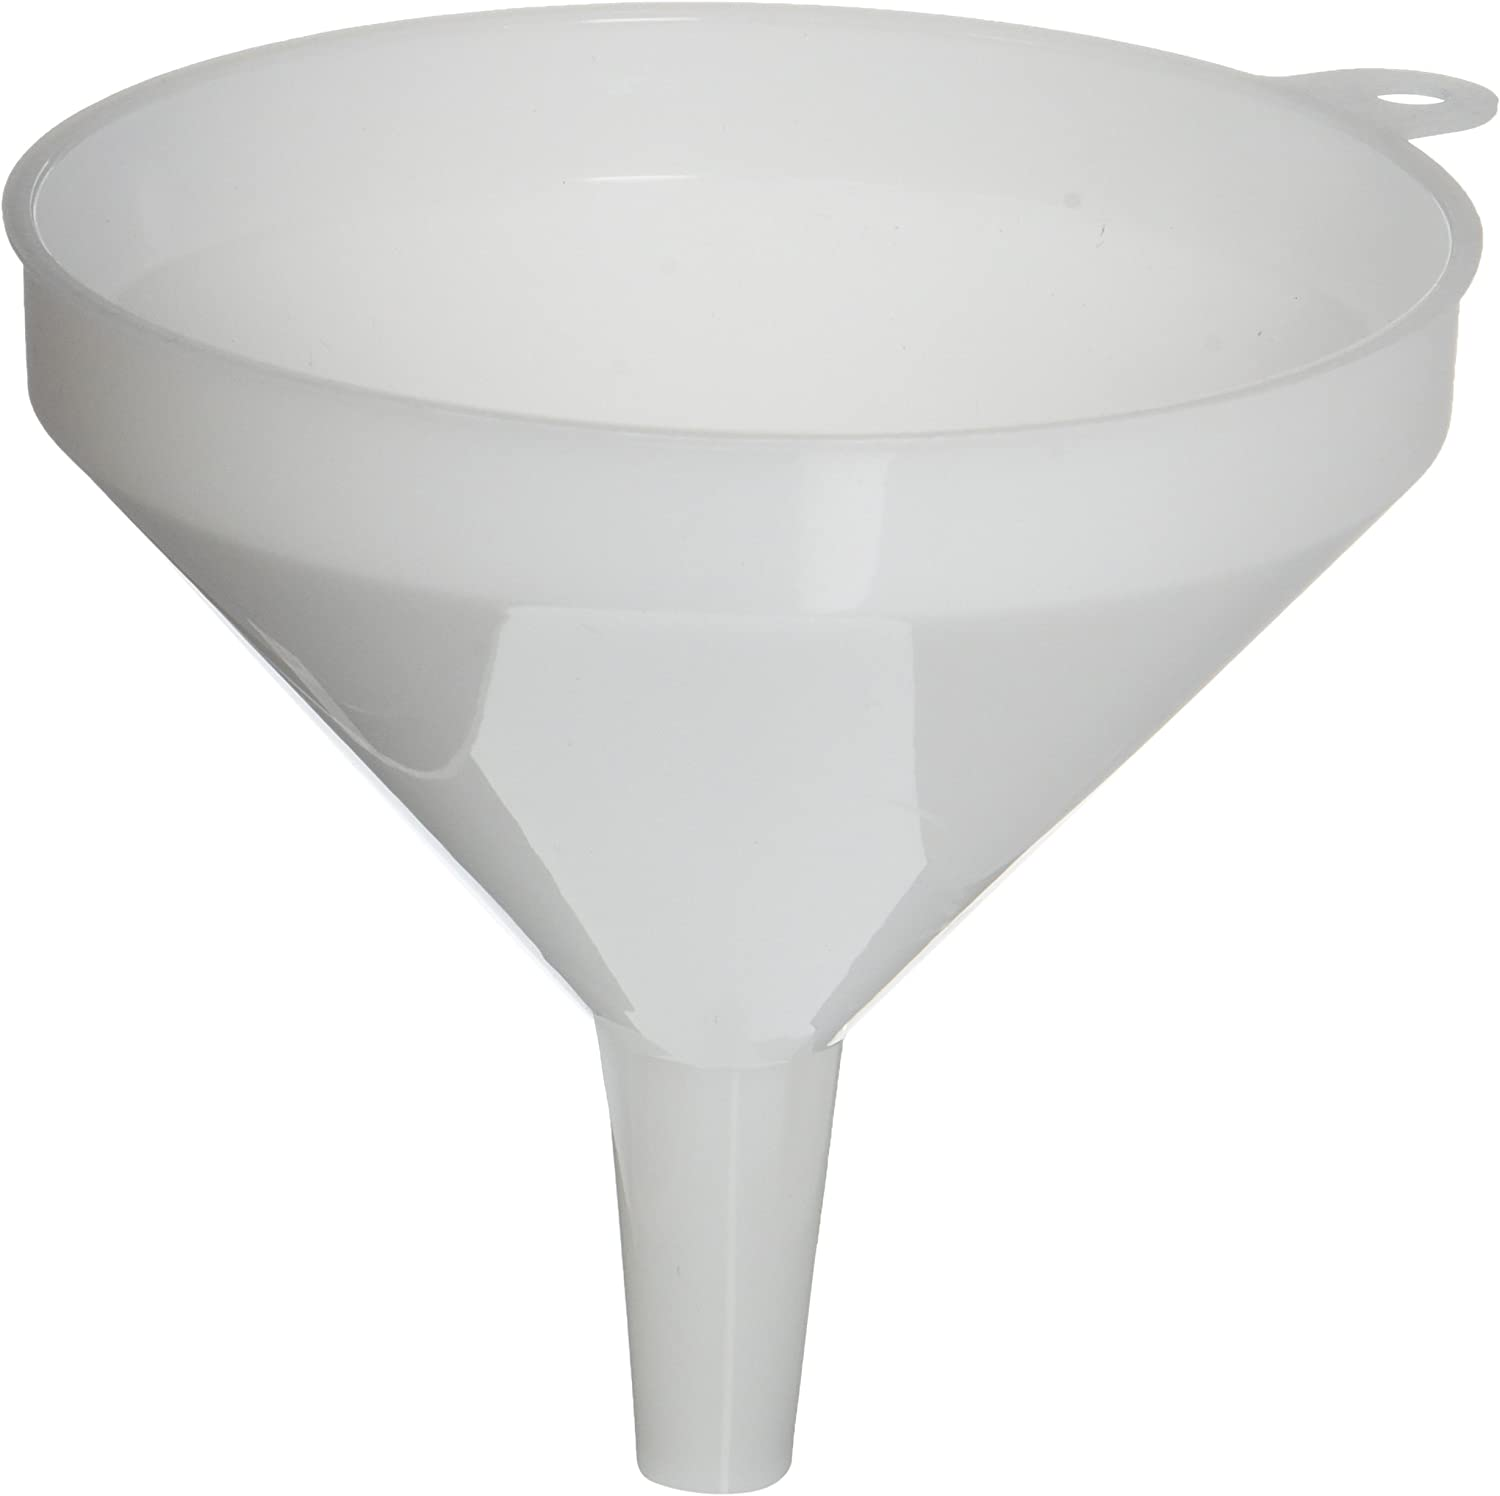 Winco PF-16 Plastic Funnel, 5.25-Inch Diameter,White,Medium